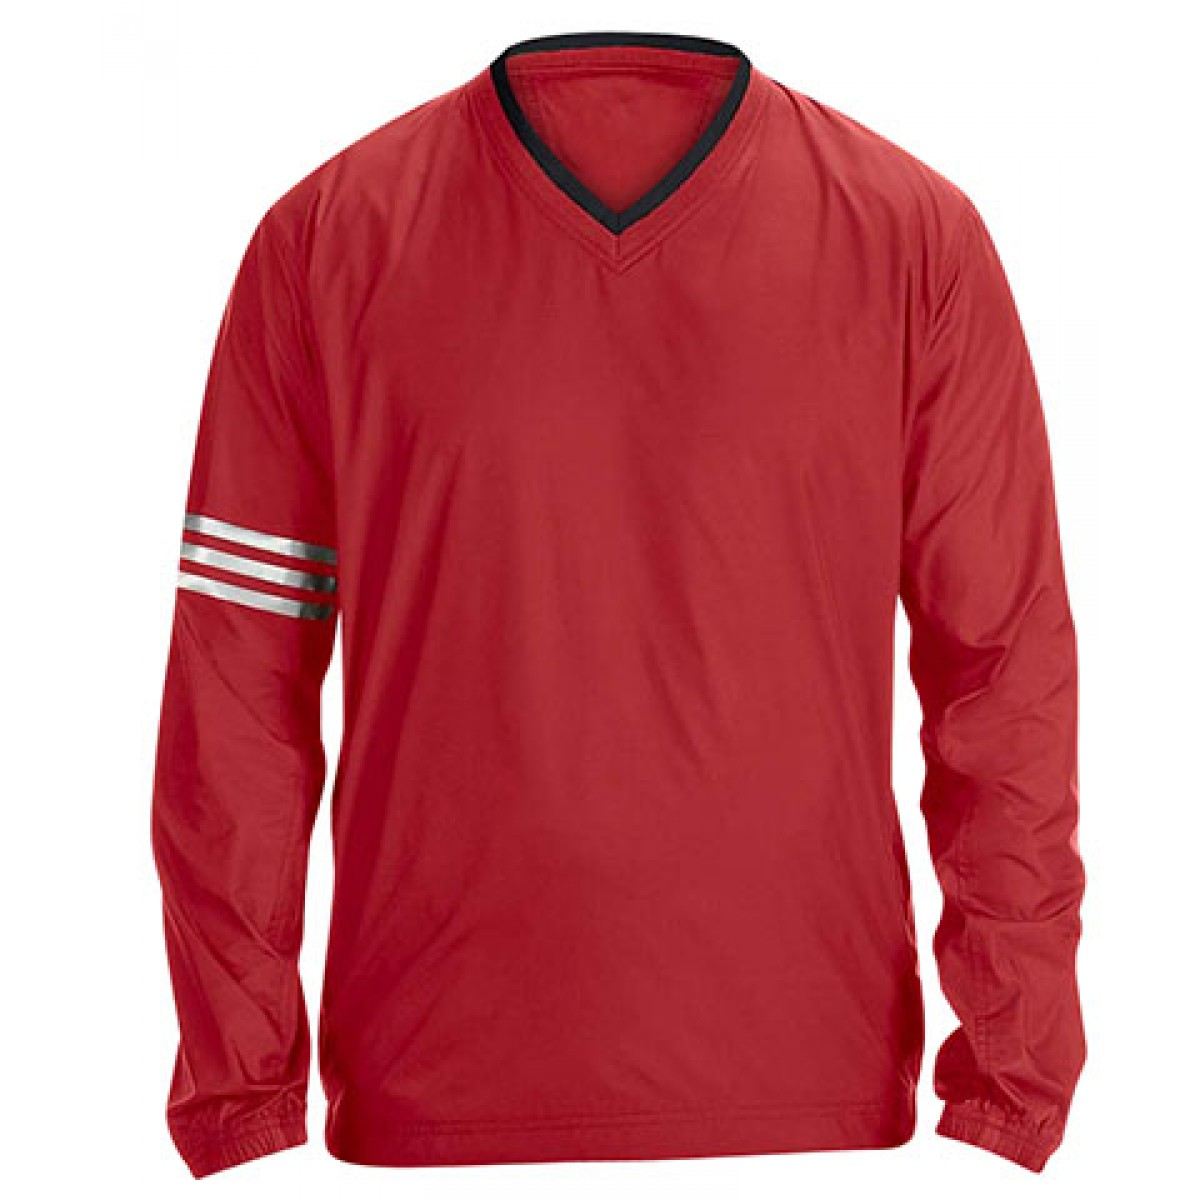 Adidas ClimaLite V-Neck Long Sleeve Wind Shirt-Red-M